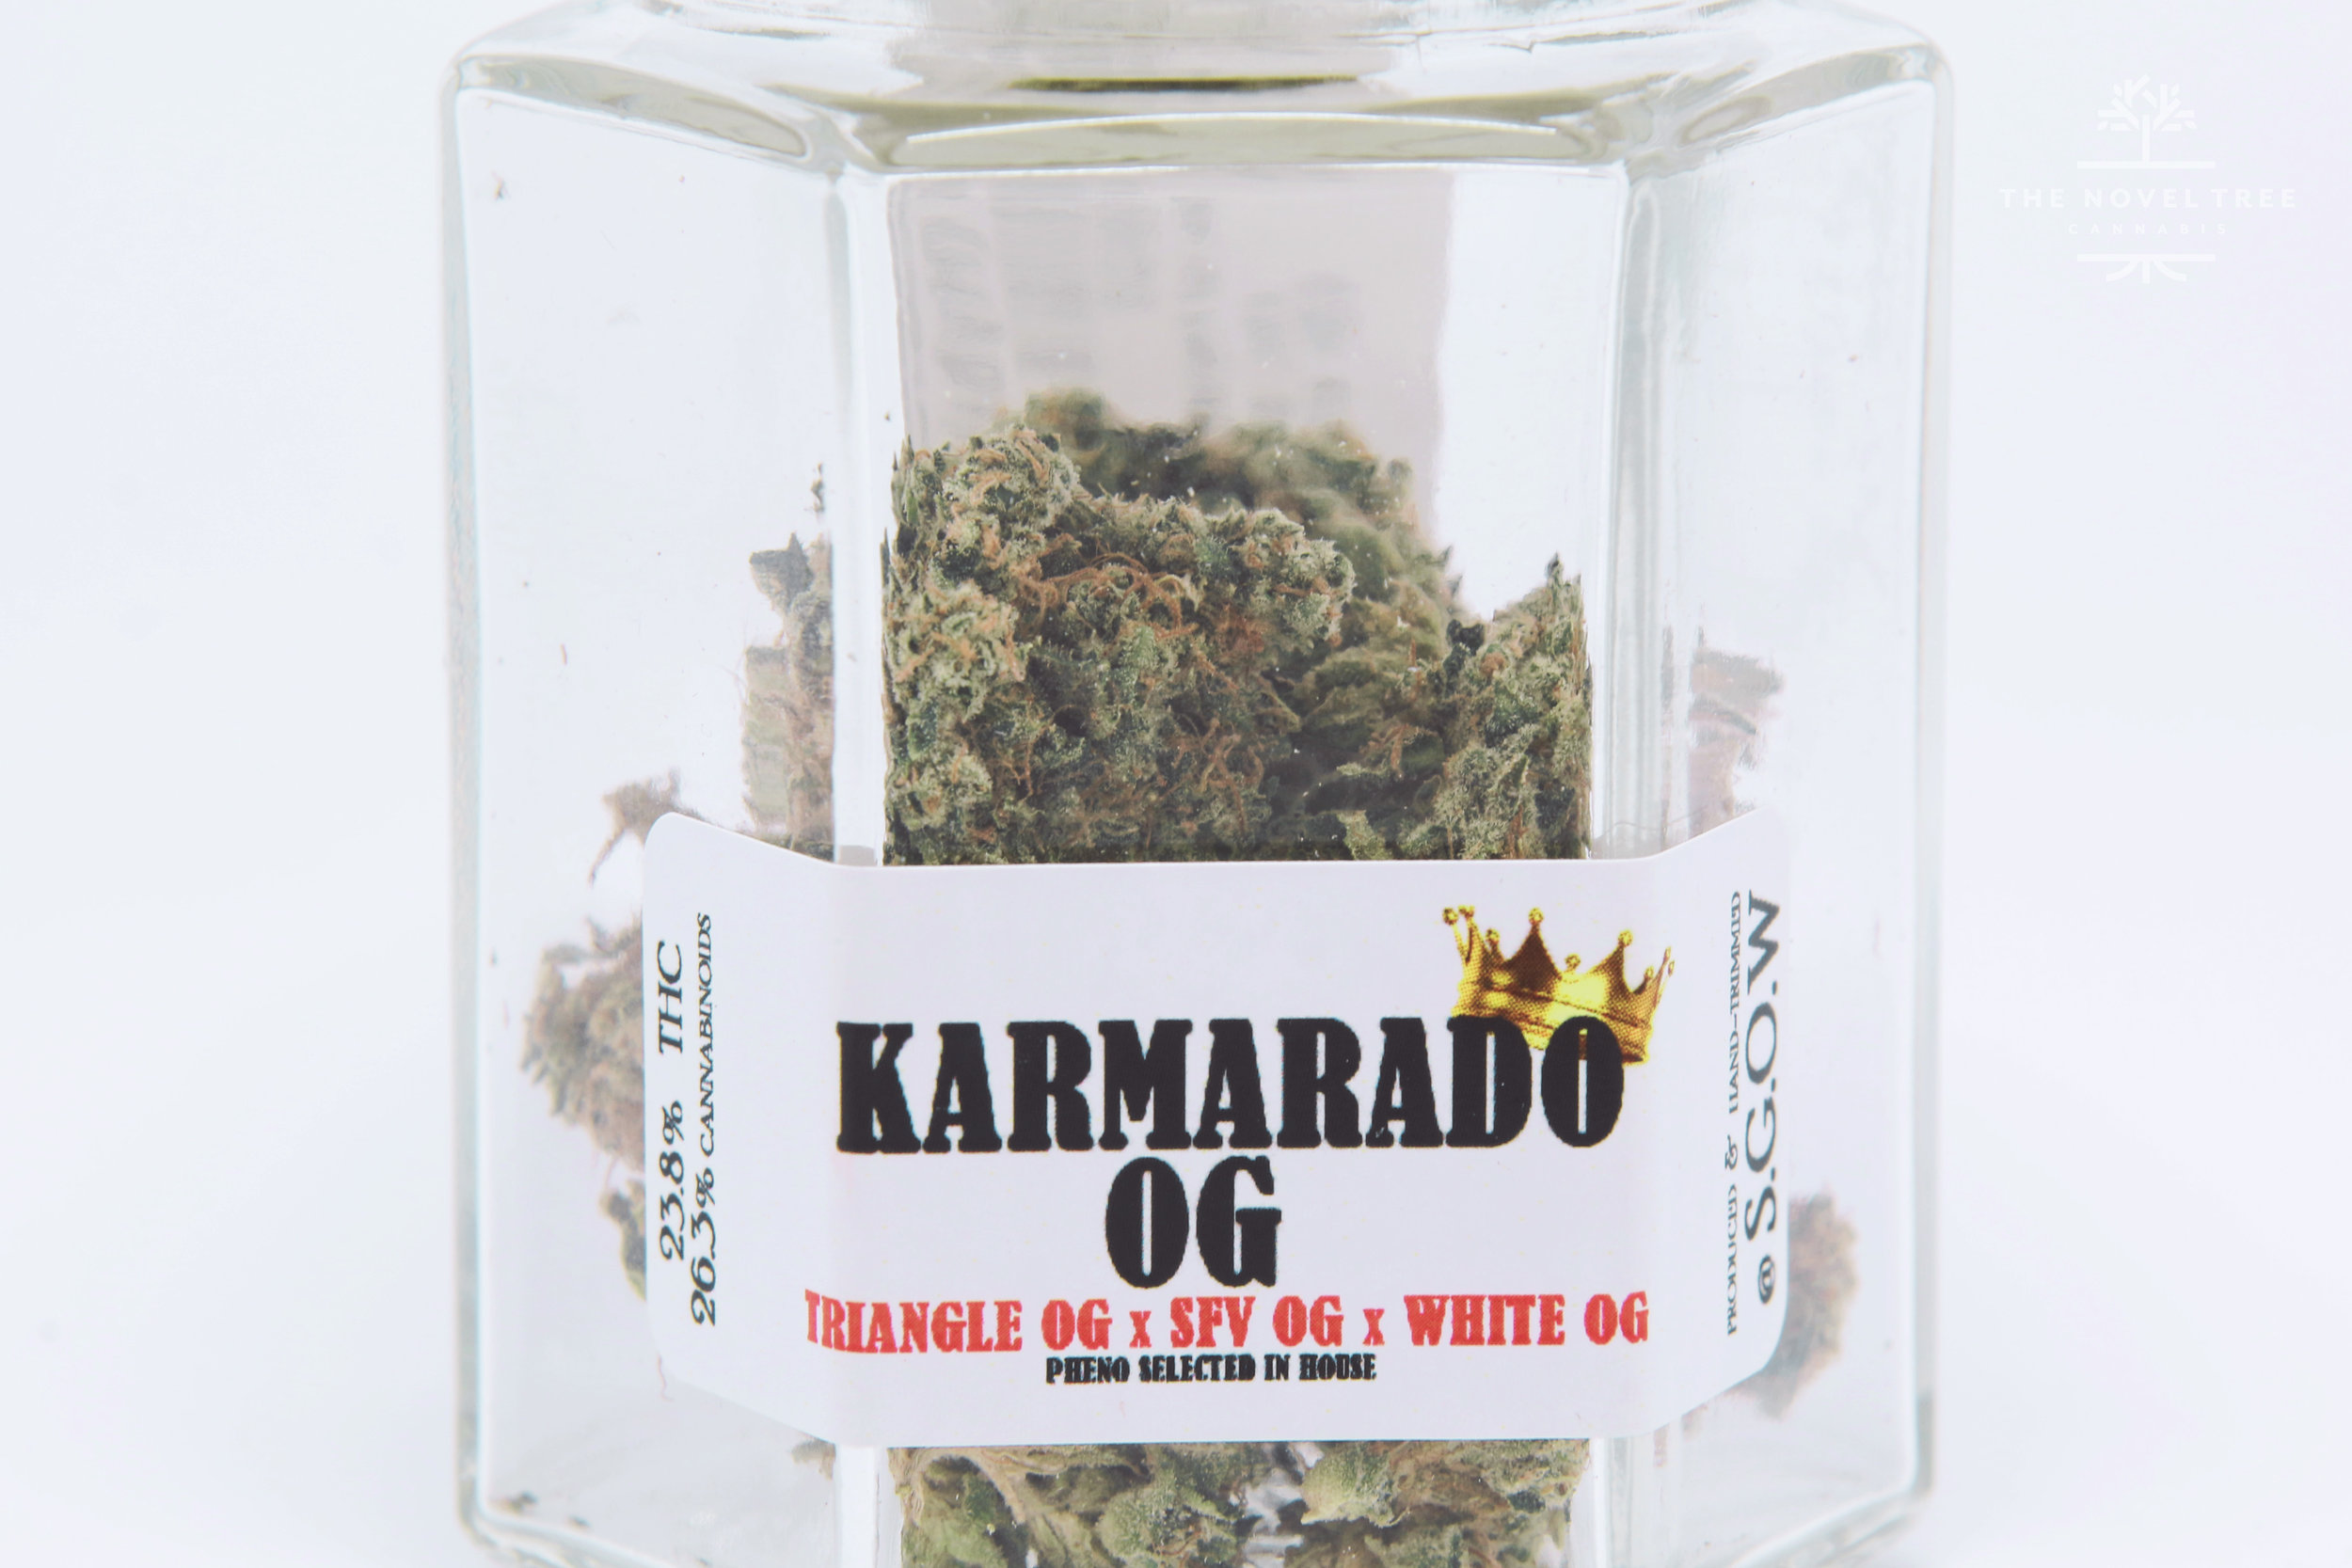 Karmarado OG by Secret Gardens of Washington